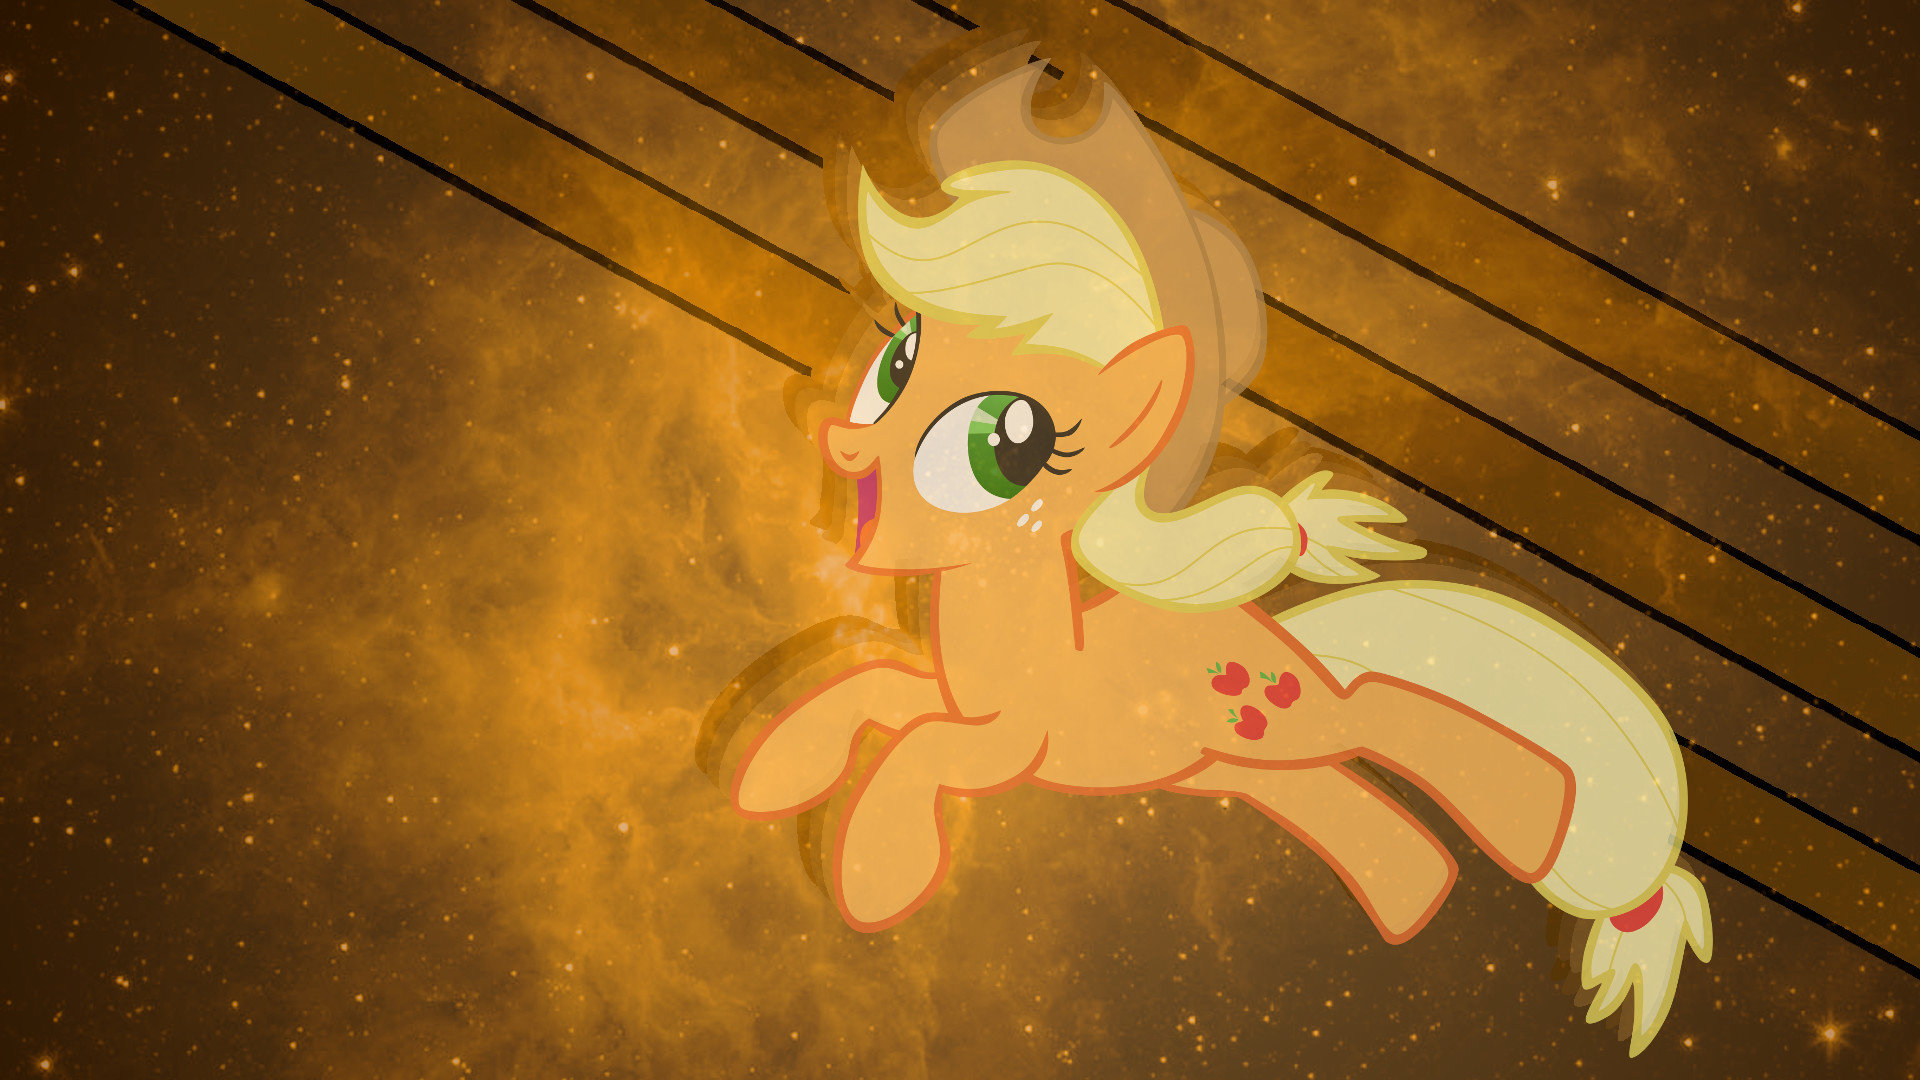 Awesome Applejack (My Little Pony) free background ID:154632 for hd 1920x1080 computer